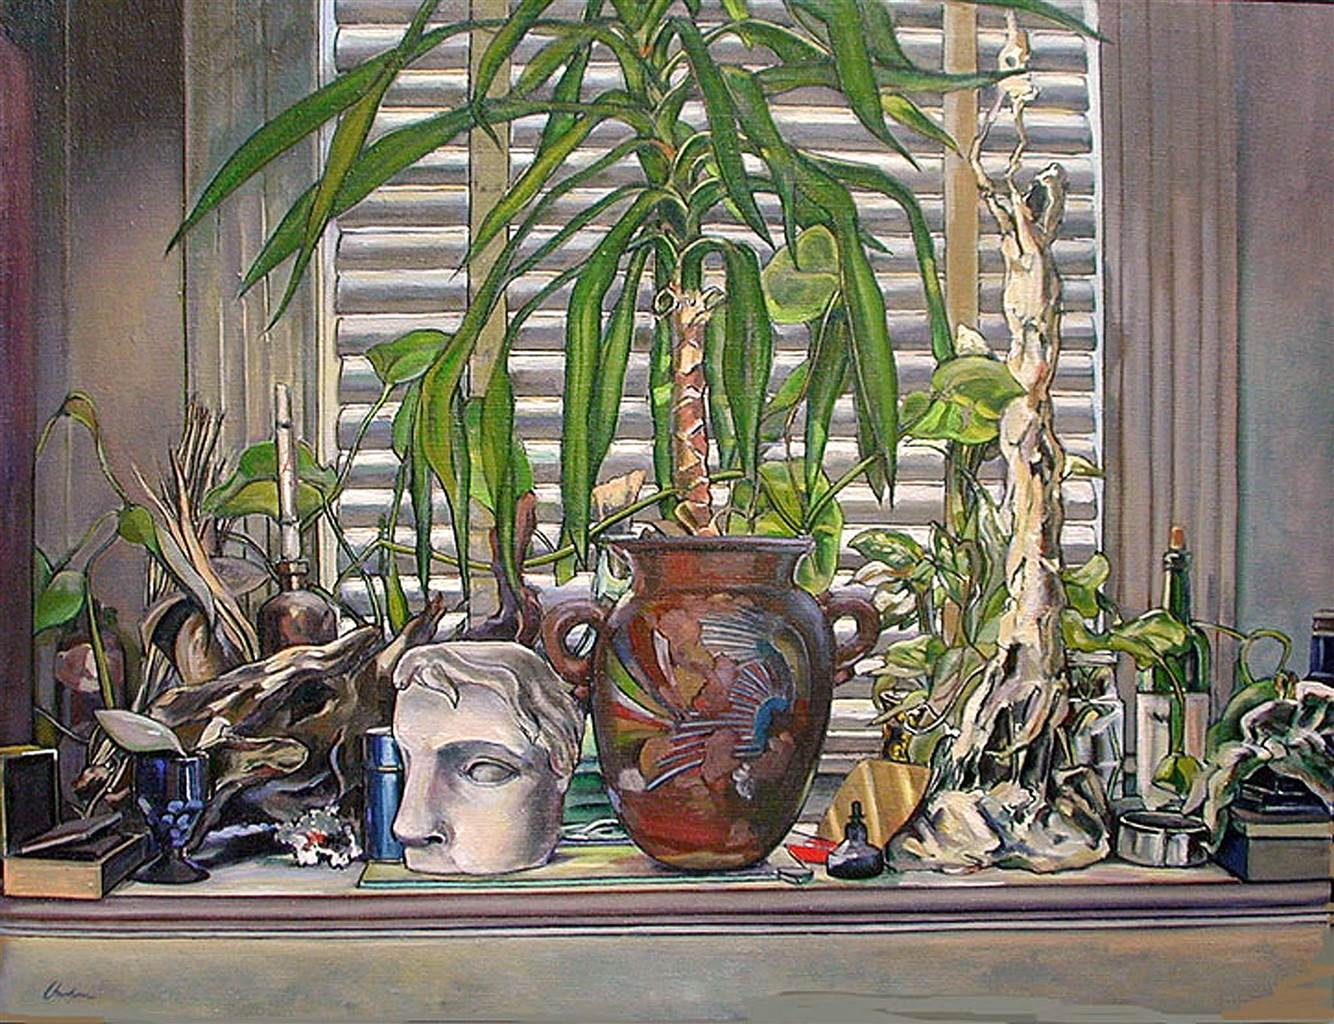 James Chisholm, Classic Cast with Cane Plant, oil on Canvas, 28''x 36'' image